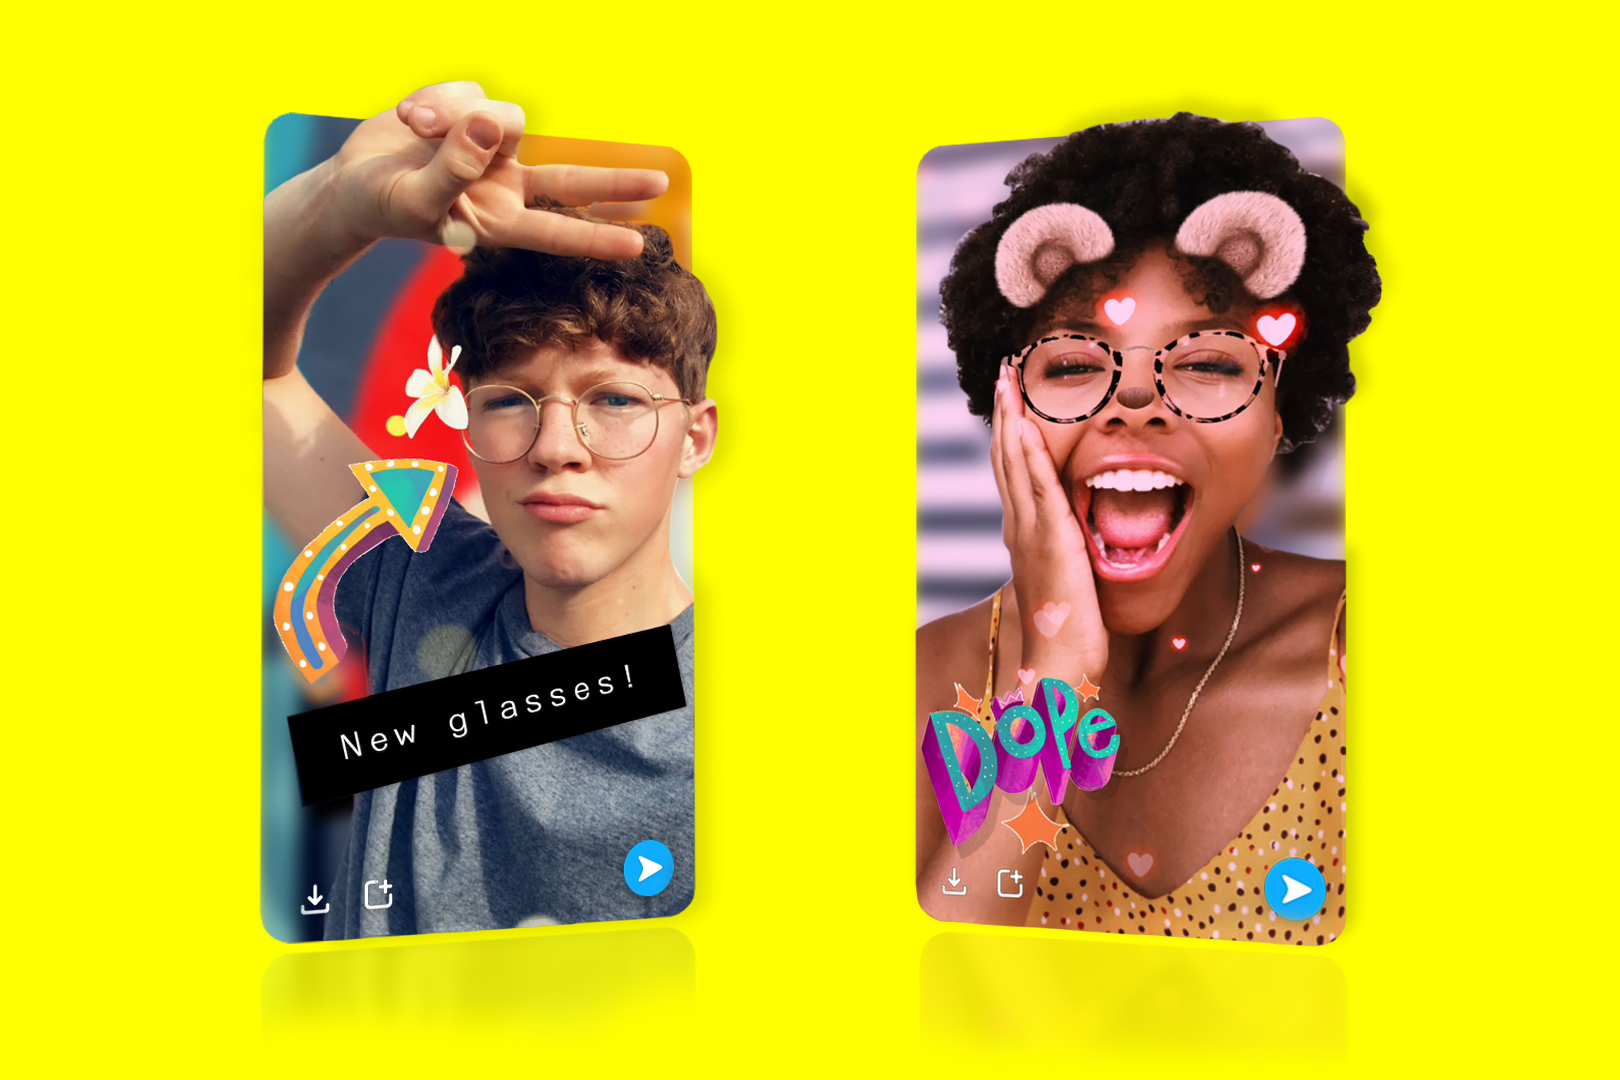 Snapchat introduces new 3D Camera Mode for iPhone